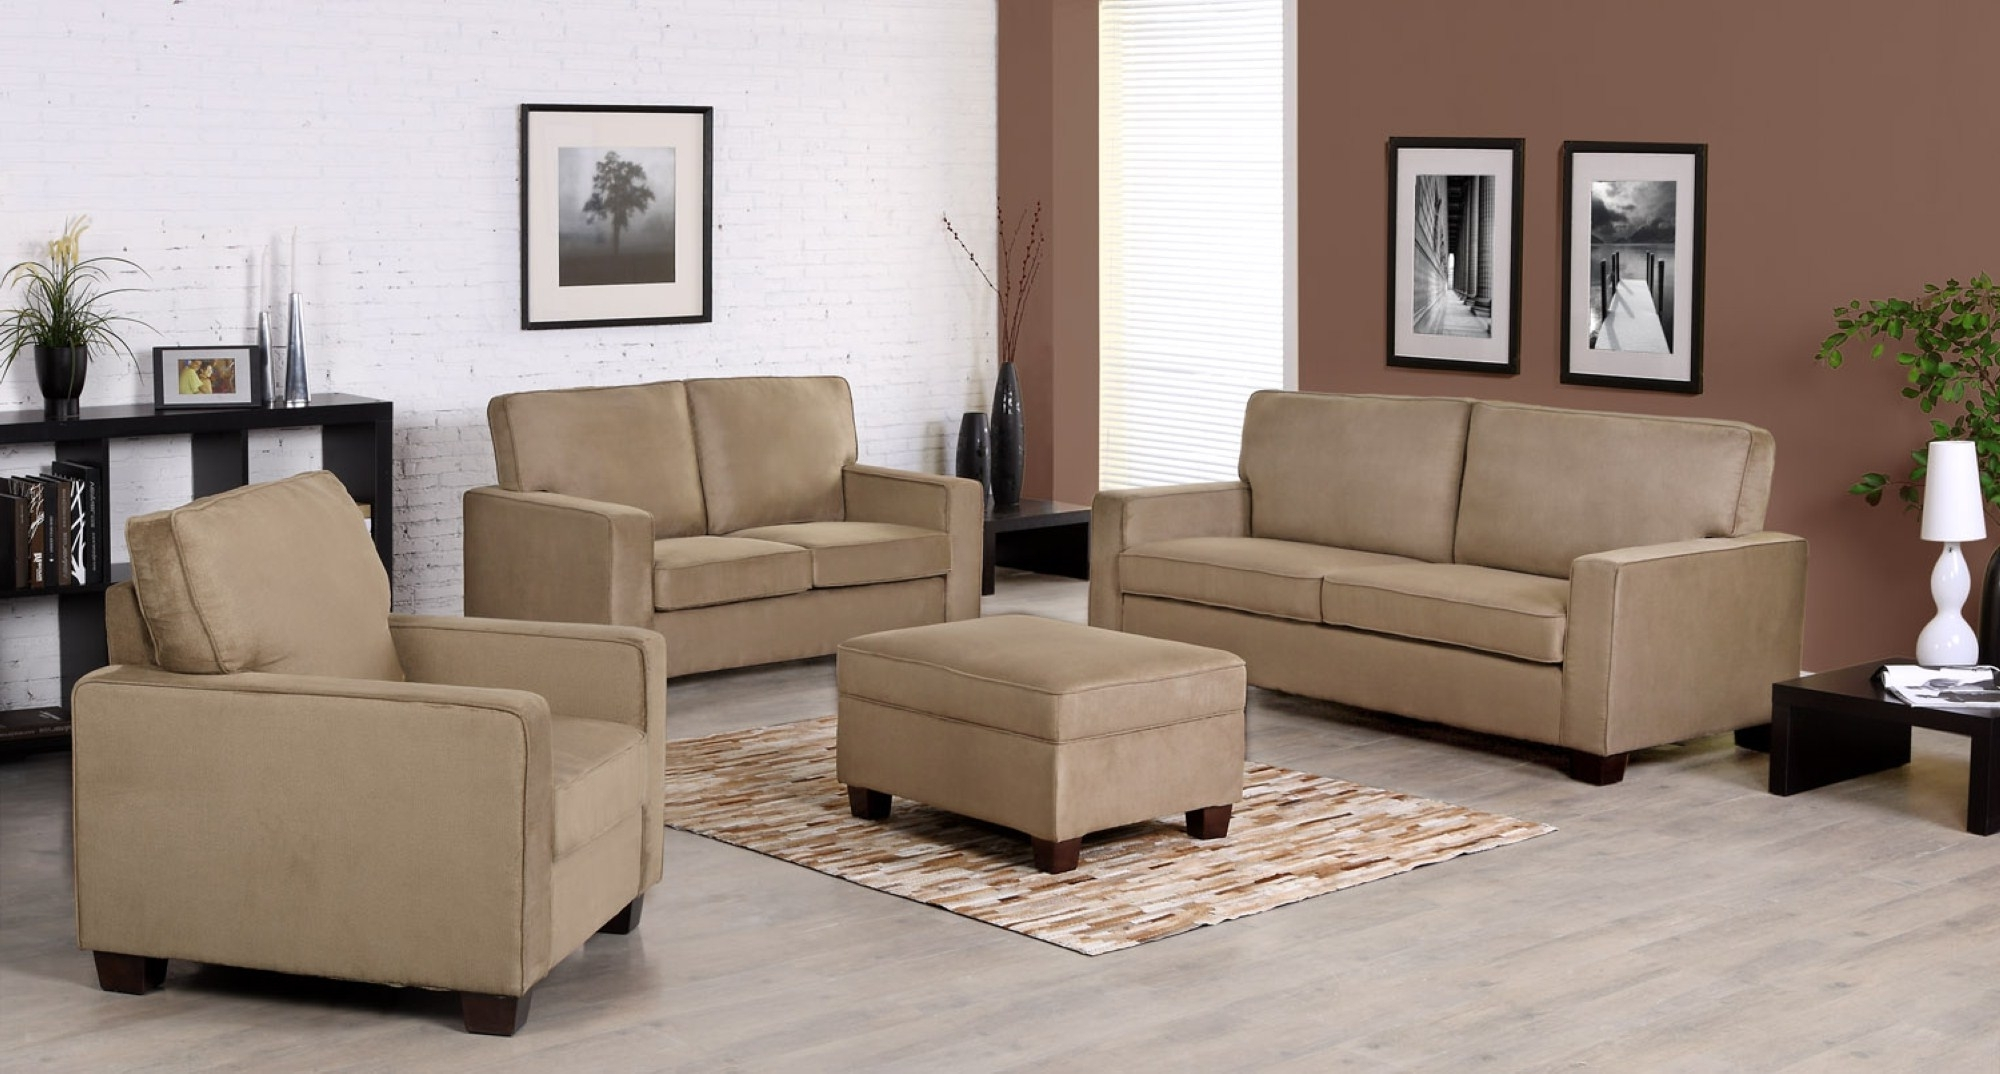 Well Known Sectional Sofas In Hyderabad With Regard To Inspiring Unique Sofa Sets Pictures Best Idea Home Design Unusual (View 7 of 20)